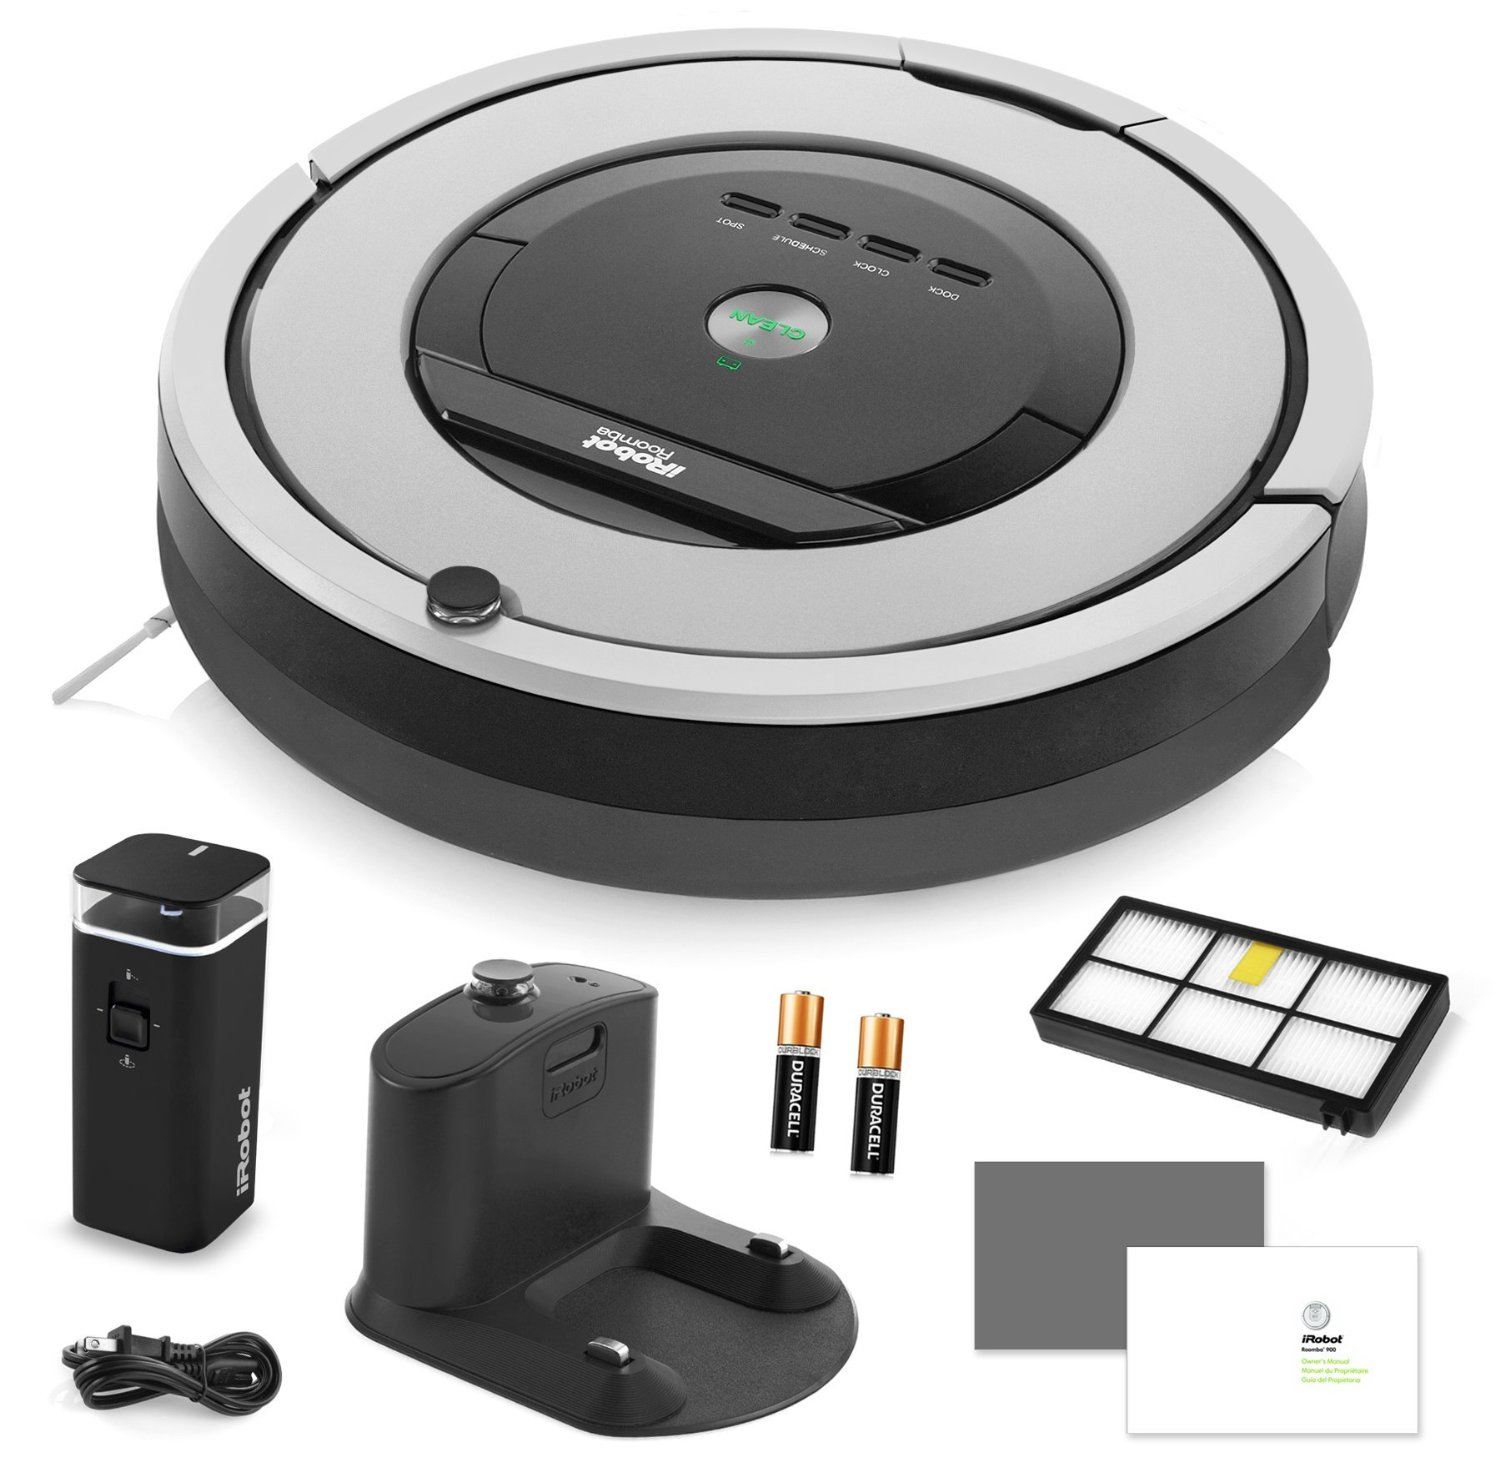 iRobot Roomba 860 Vacuum Cleaning Robot + Dual Mode Virtual Wall Barriers (With Batteries) + Extra HEPA Filter + More!